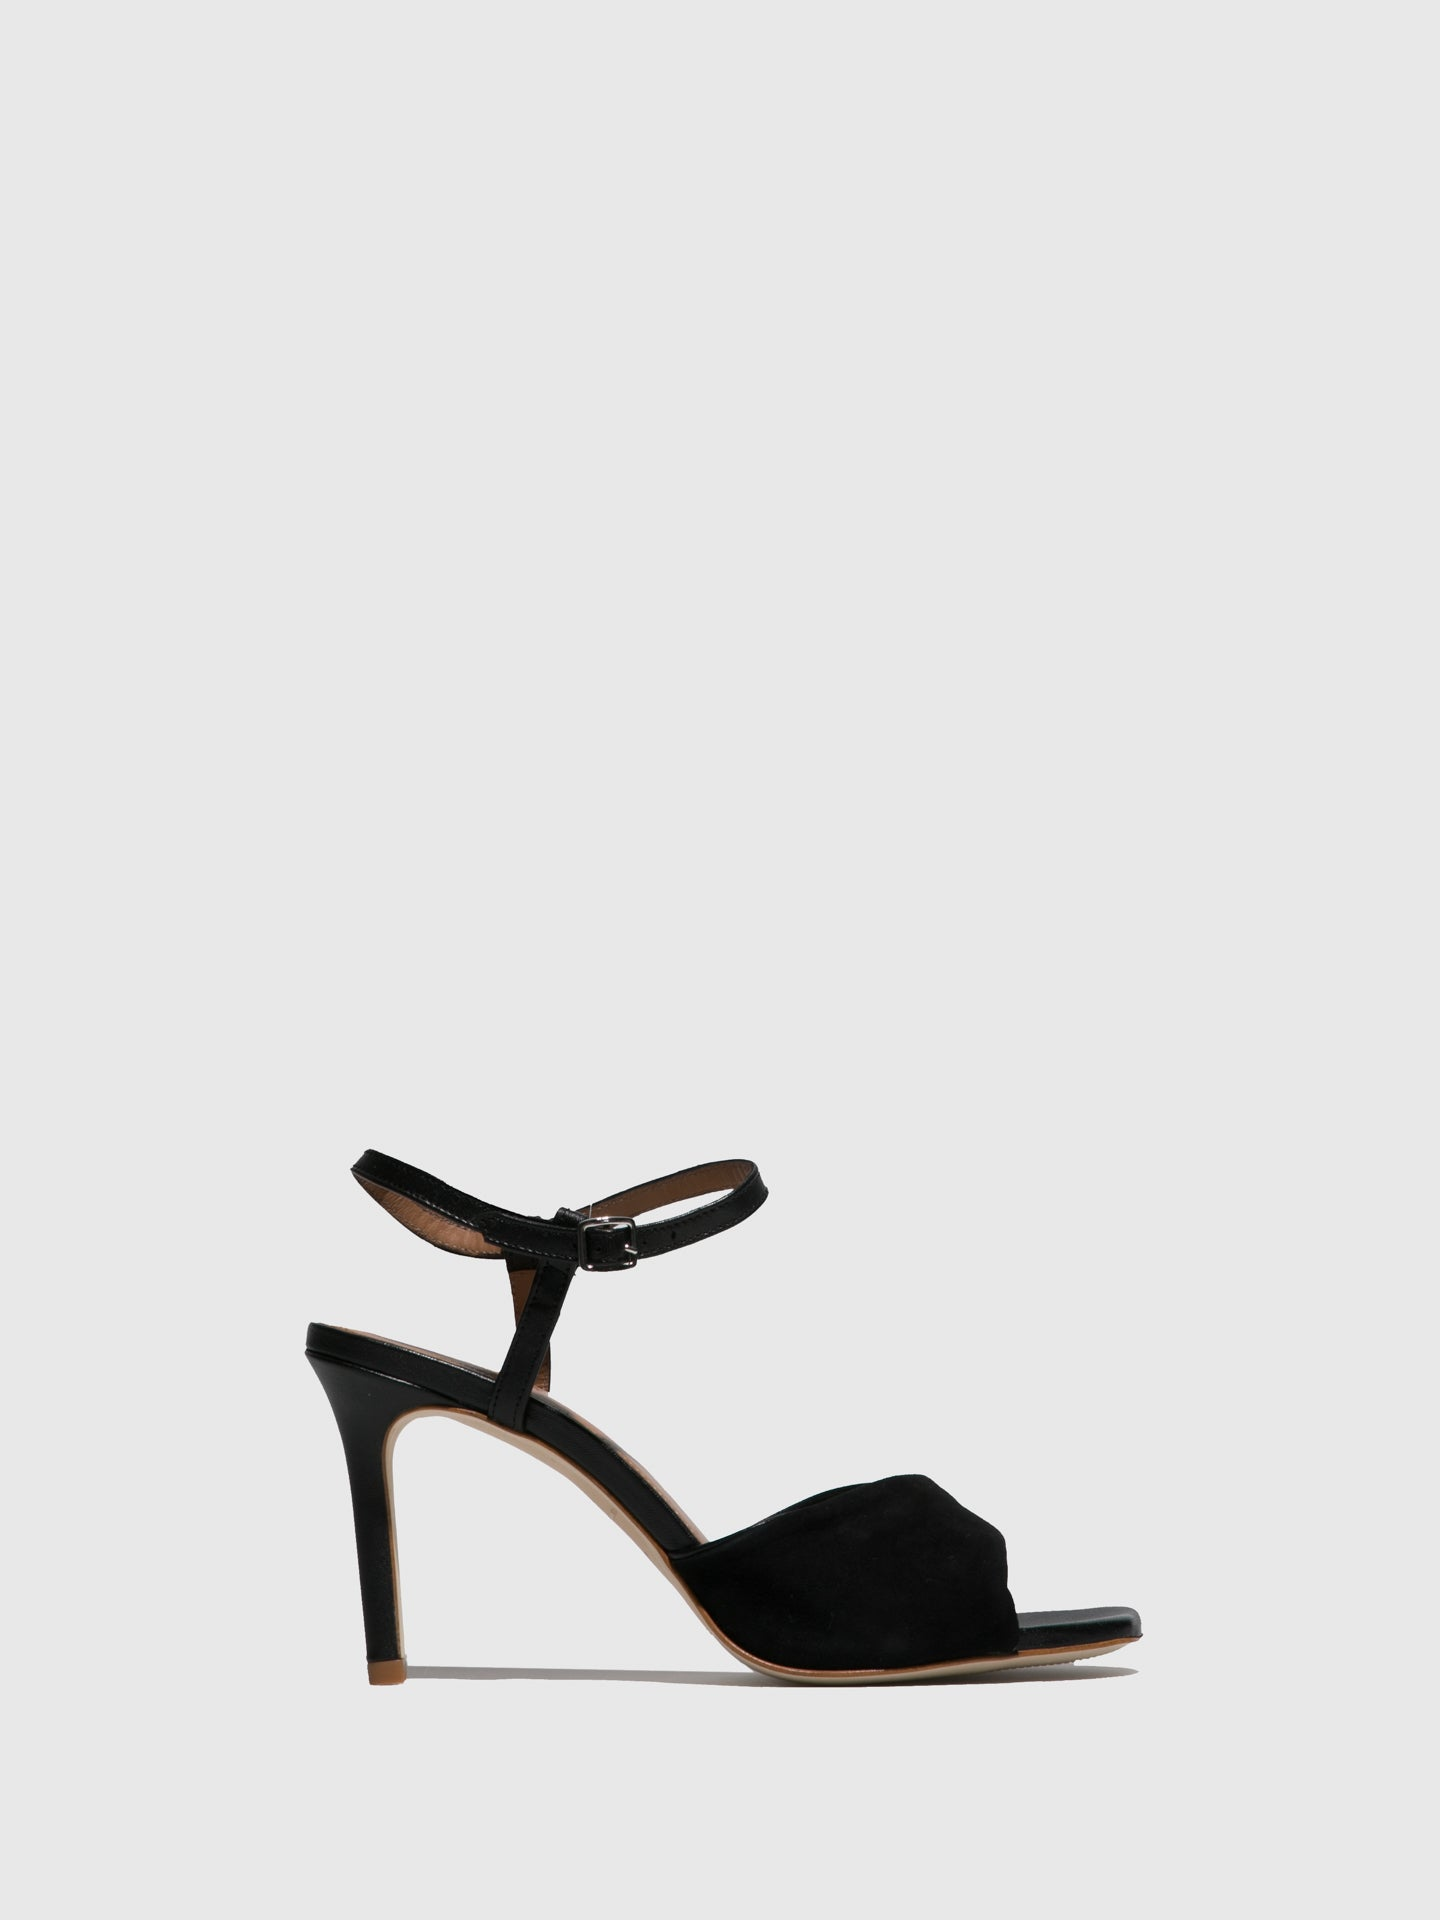 JJ Heitor Black Heel Sandals